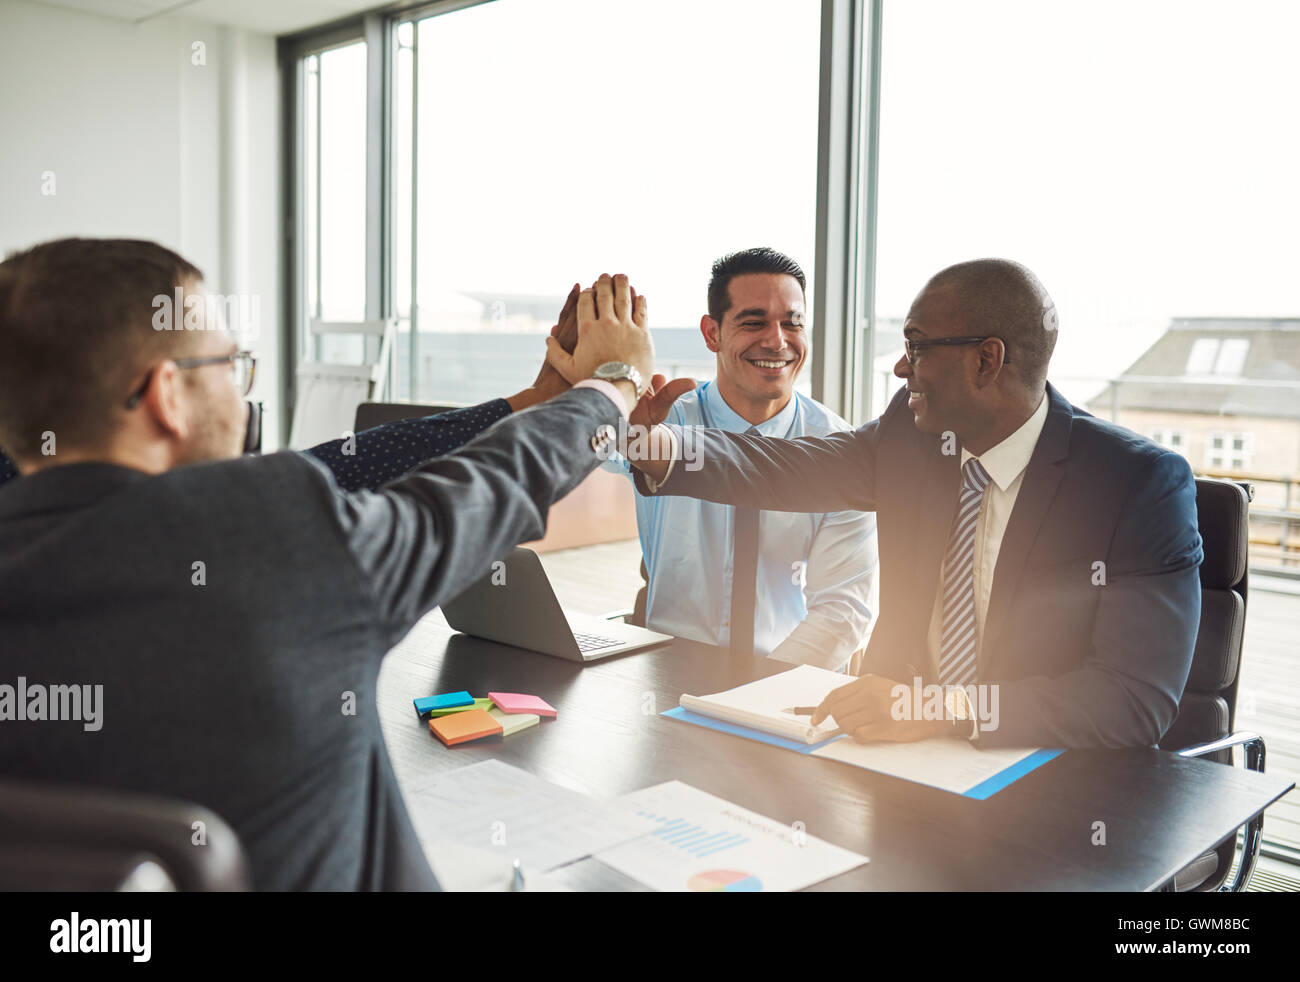 Successful multiethnic business team congratulating each other on an achievement giving a high fives gesture with - Stock Image